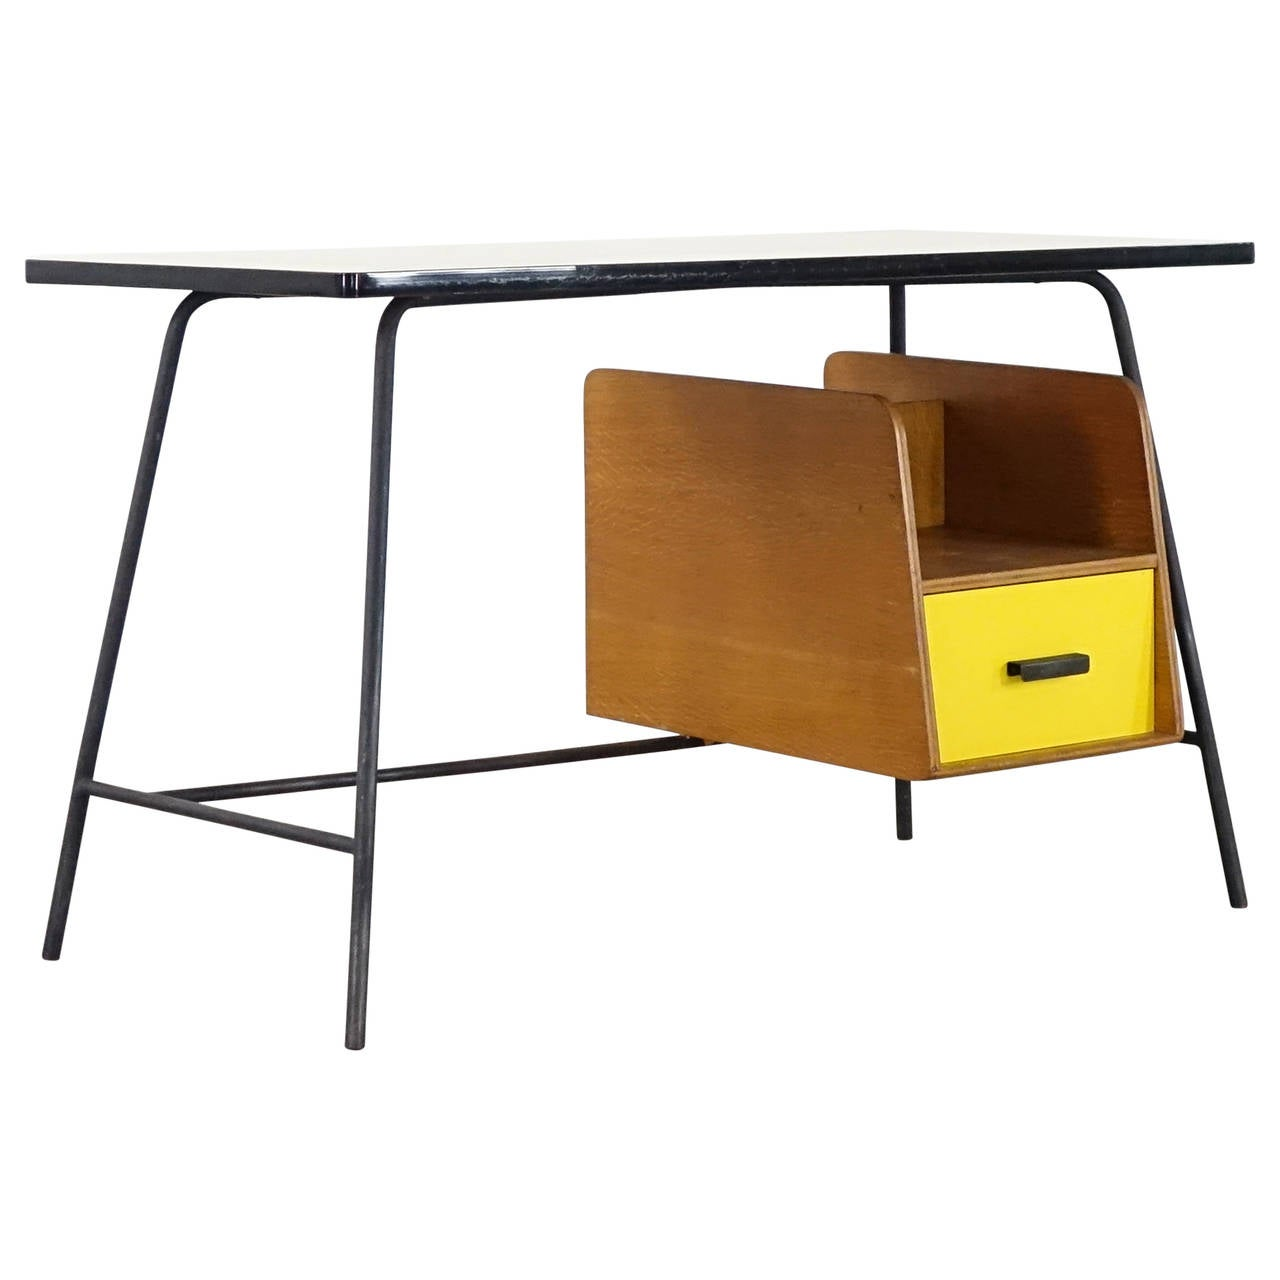 Pierre Paulin Small Yellow Formica Desk and Drawer, France 1957